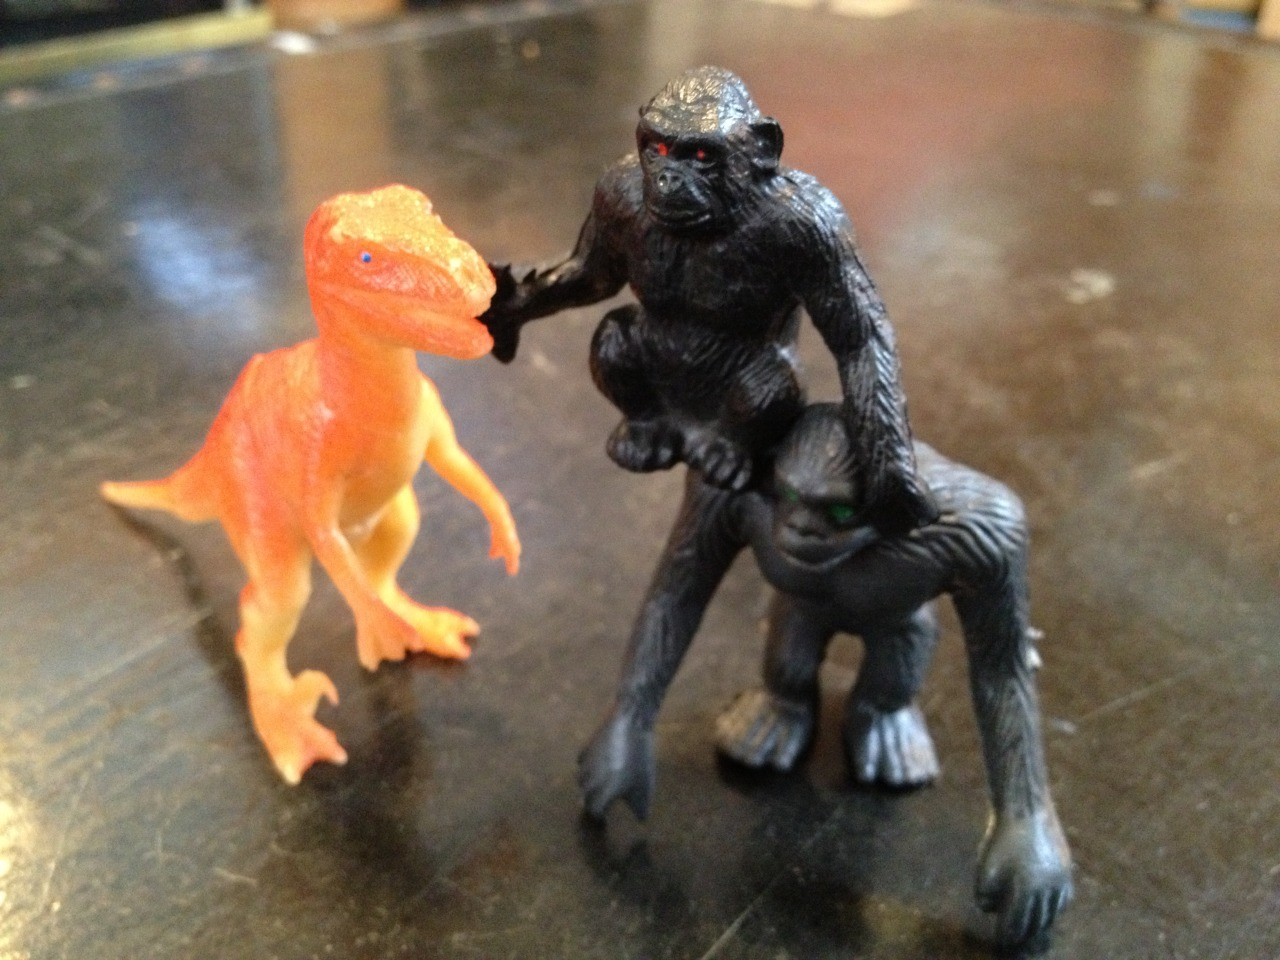 He brought a friend to face the featherless deinonychus! BAM!